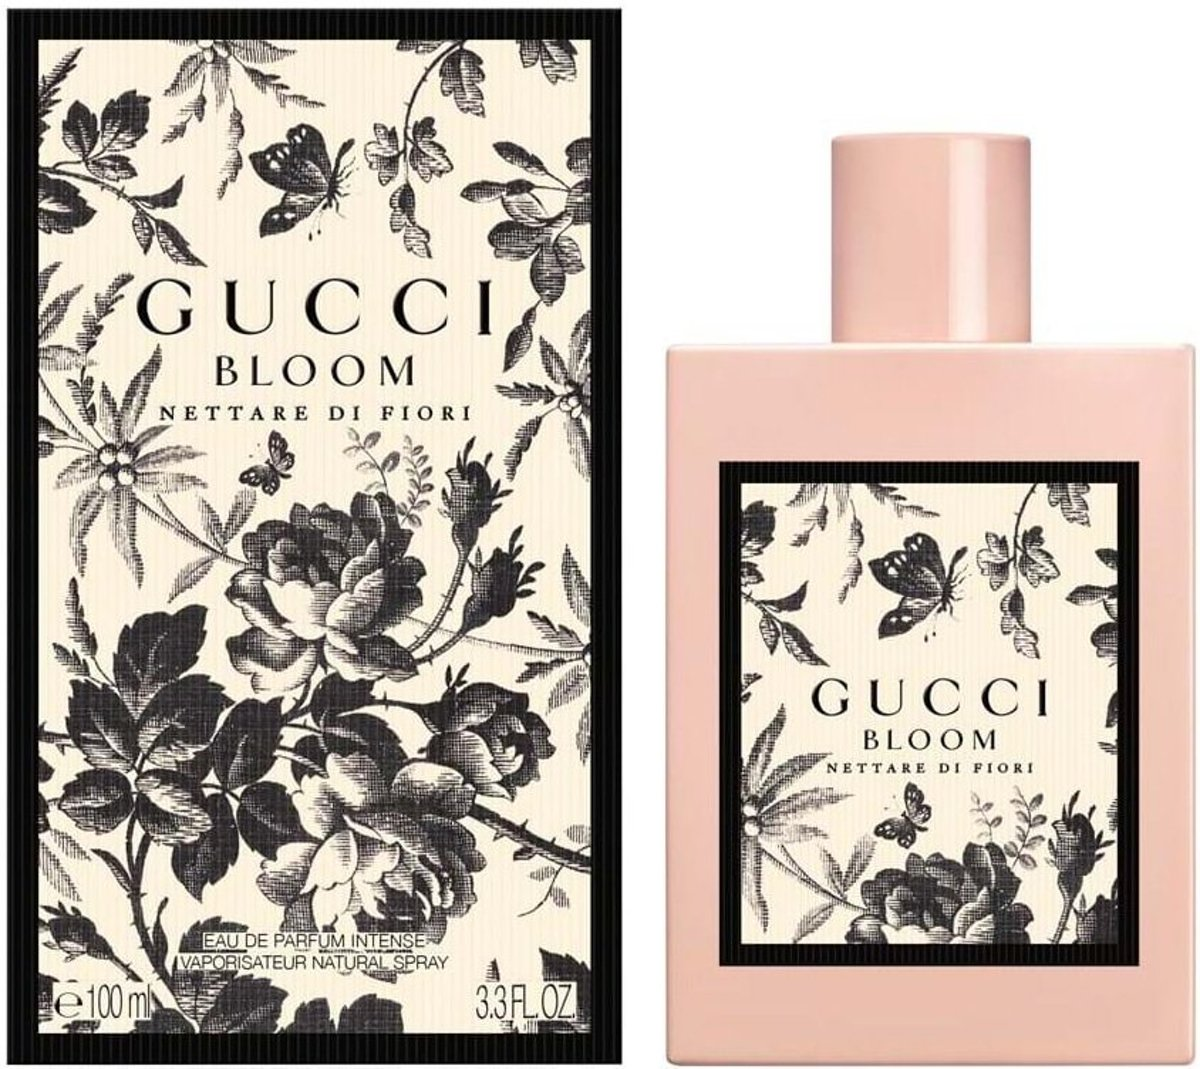 Gucci Bloom Nettare di Fiori 100 ml - Eau de Parfum - Damesparfum